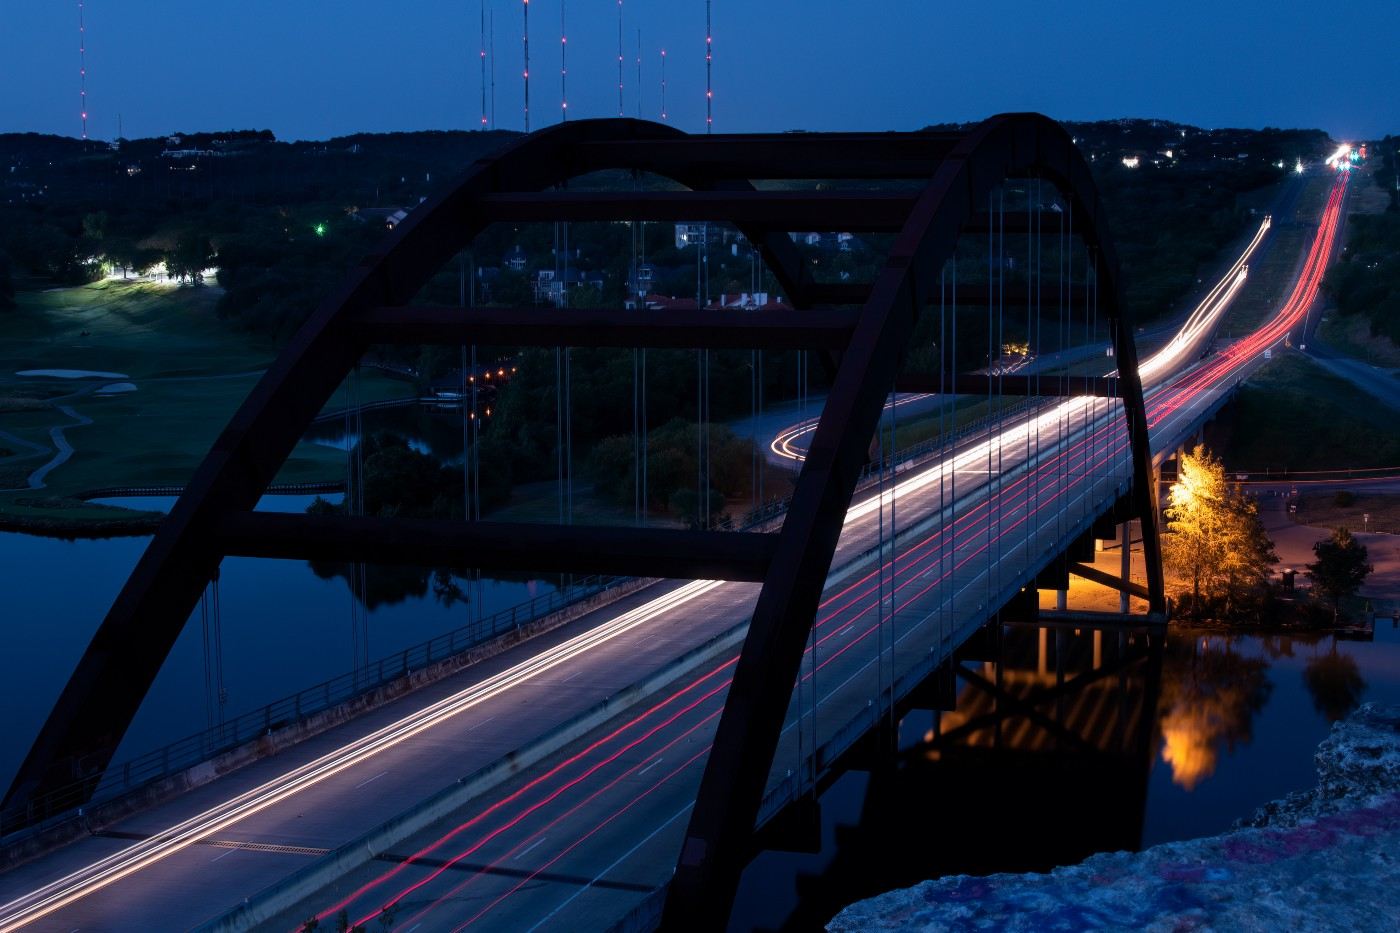 Time lapse of a bridge taken at night, with the lights of passing vehicles forming a continuous glowing line.